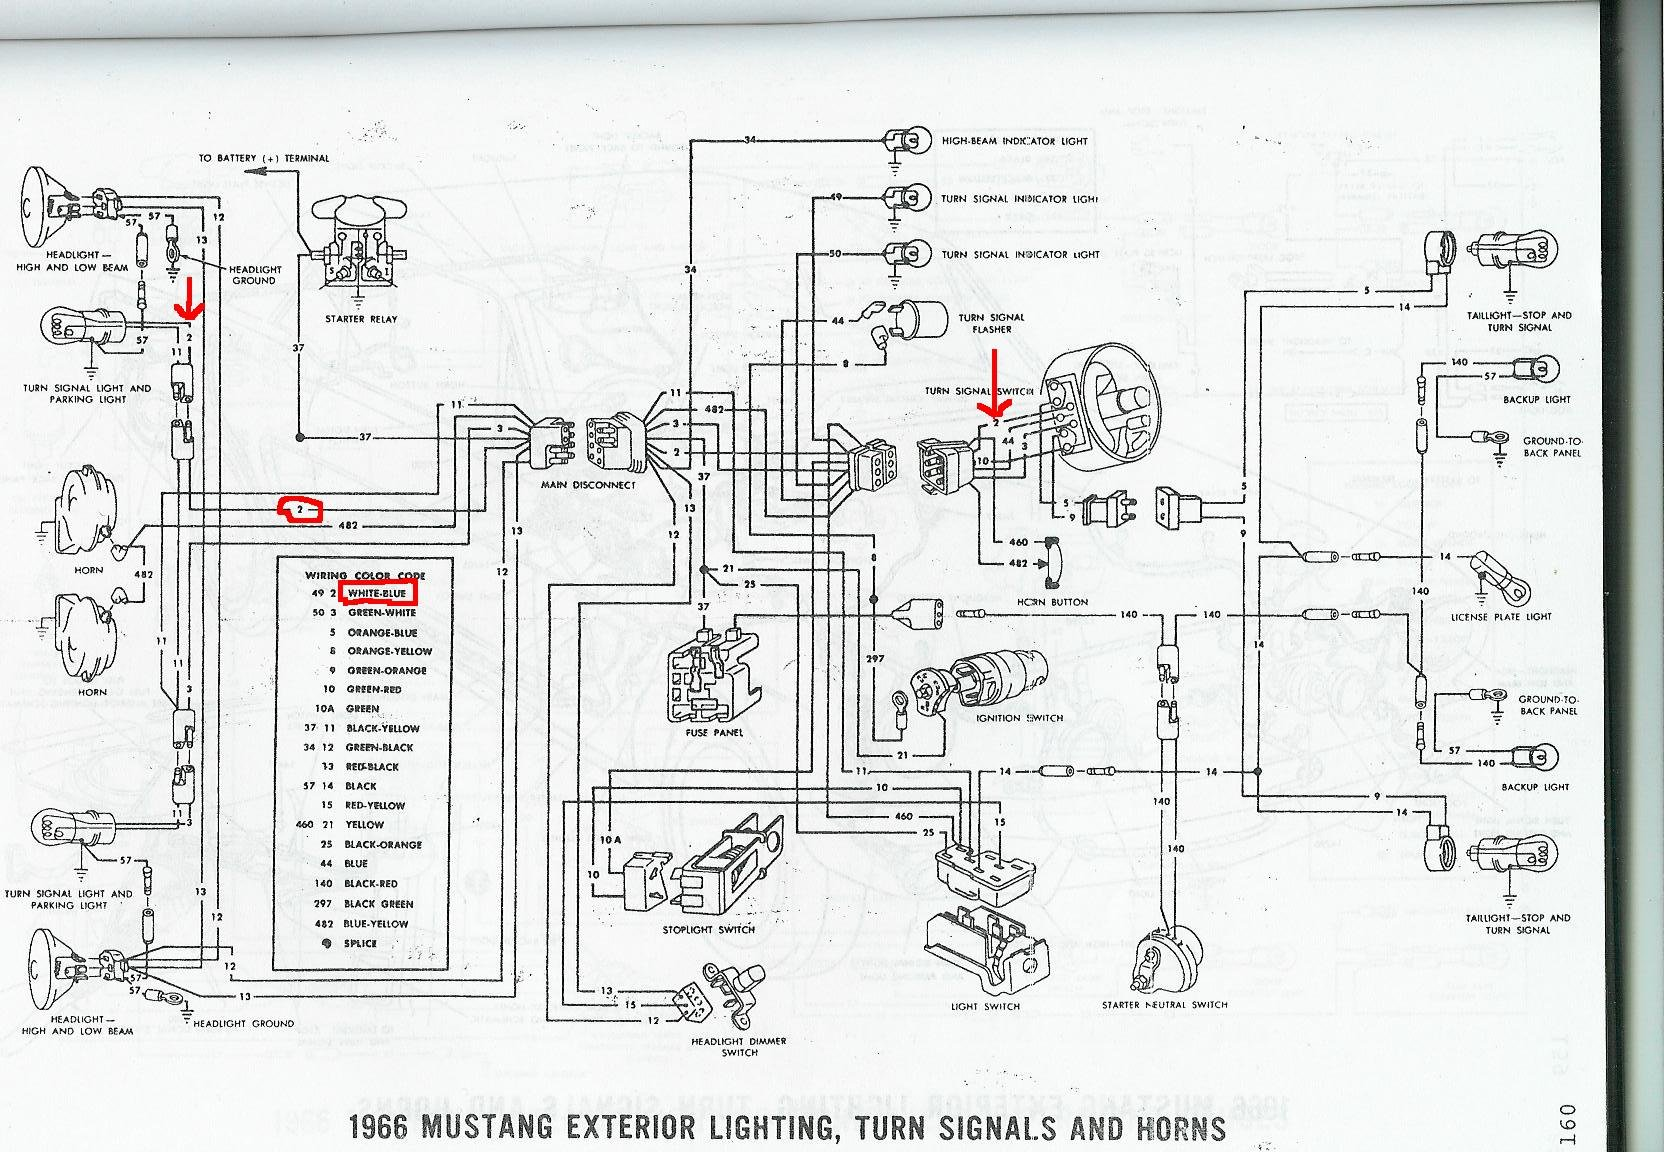 datsun 510 wiring diagram  datsun  free engine image for